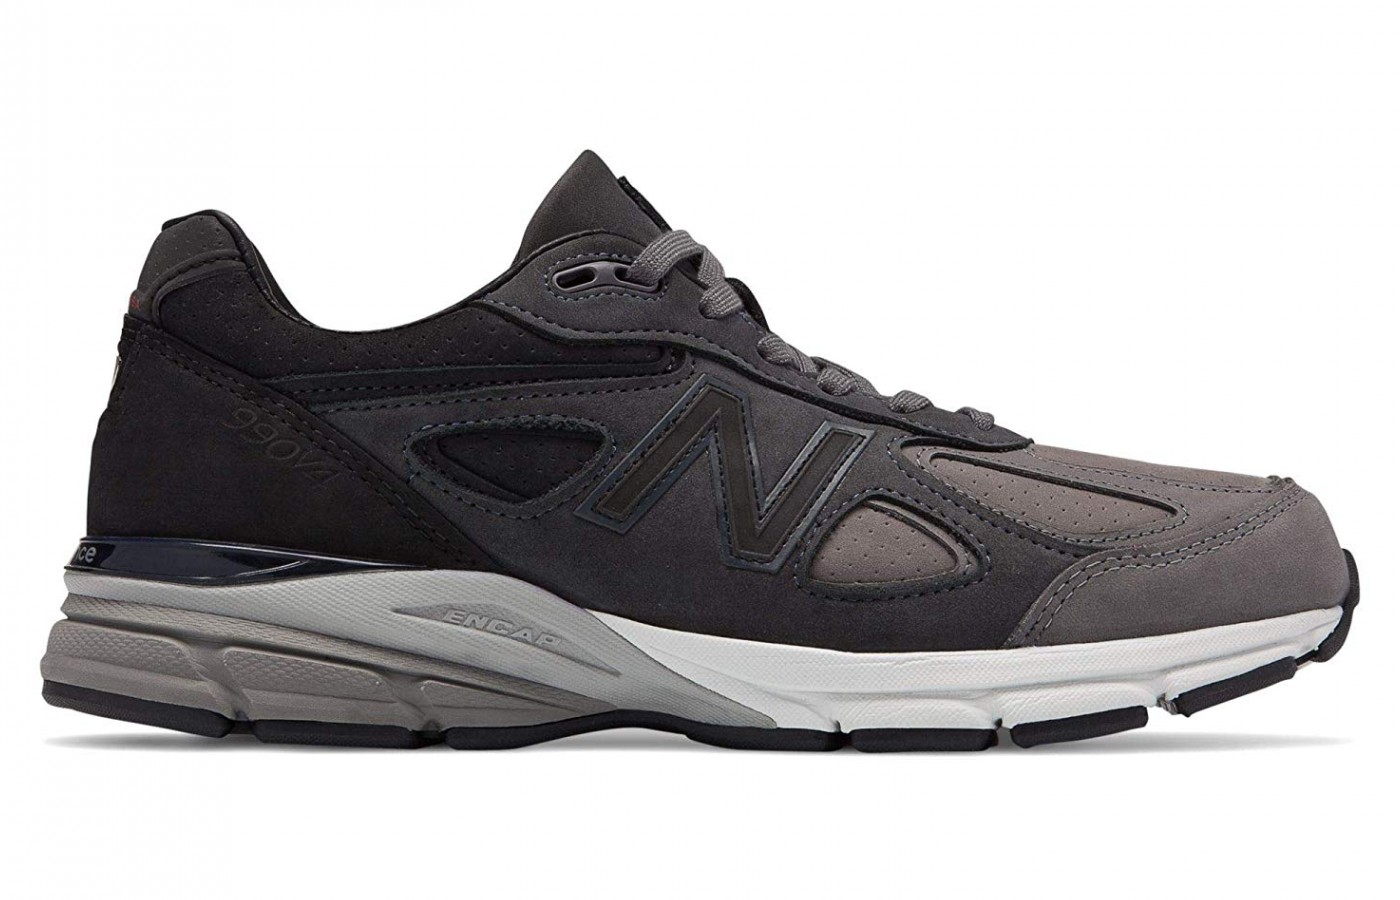 The black colour version of the New Balance 990v4